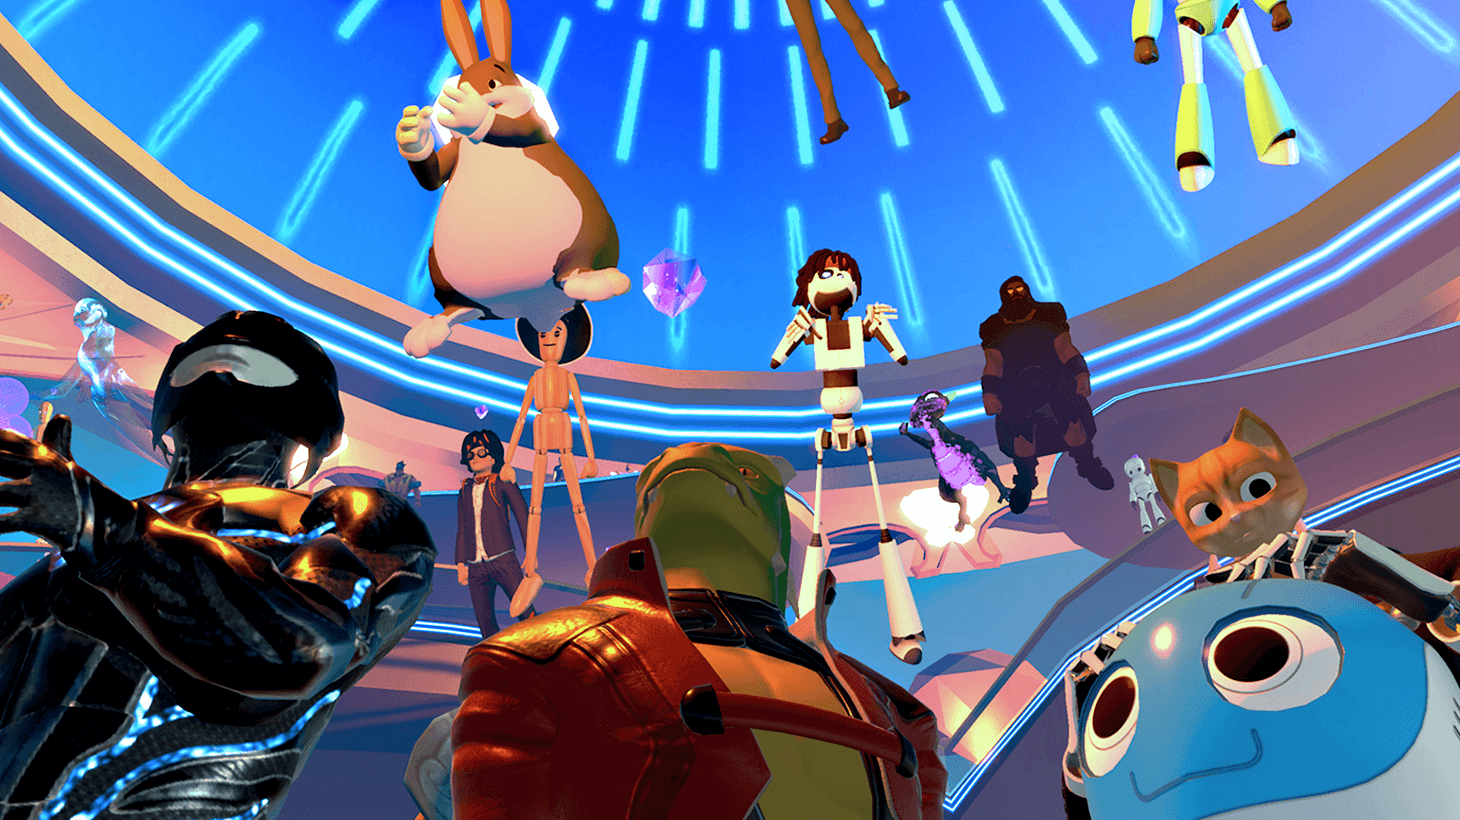 3D world in High Fidelity VR showing many 3D avatars hovering against a bright blue ceiling. There is a robot kitten, blue robot, Big Chungus, Woody, dragon, and more.